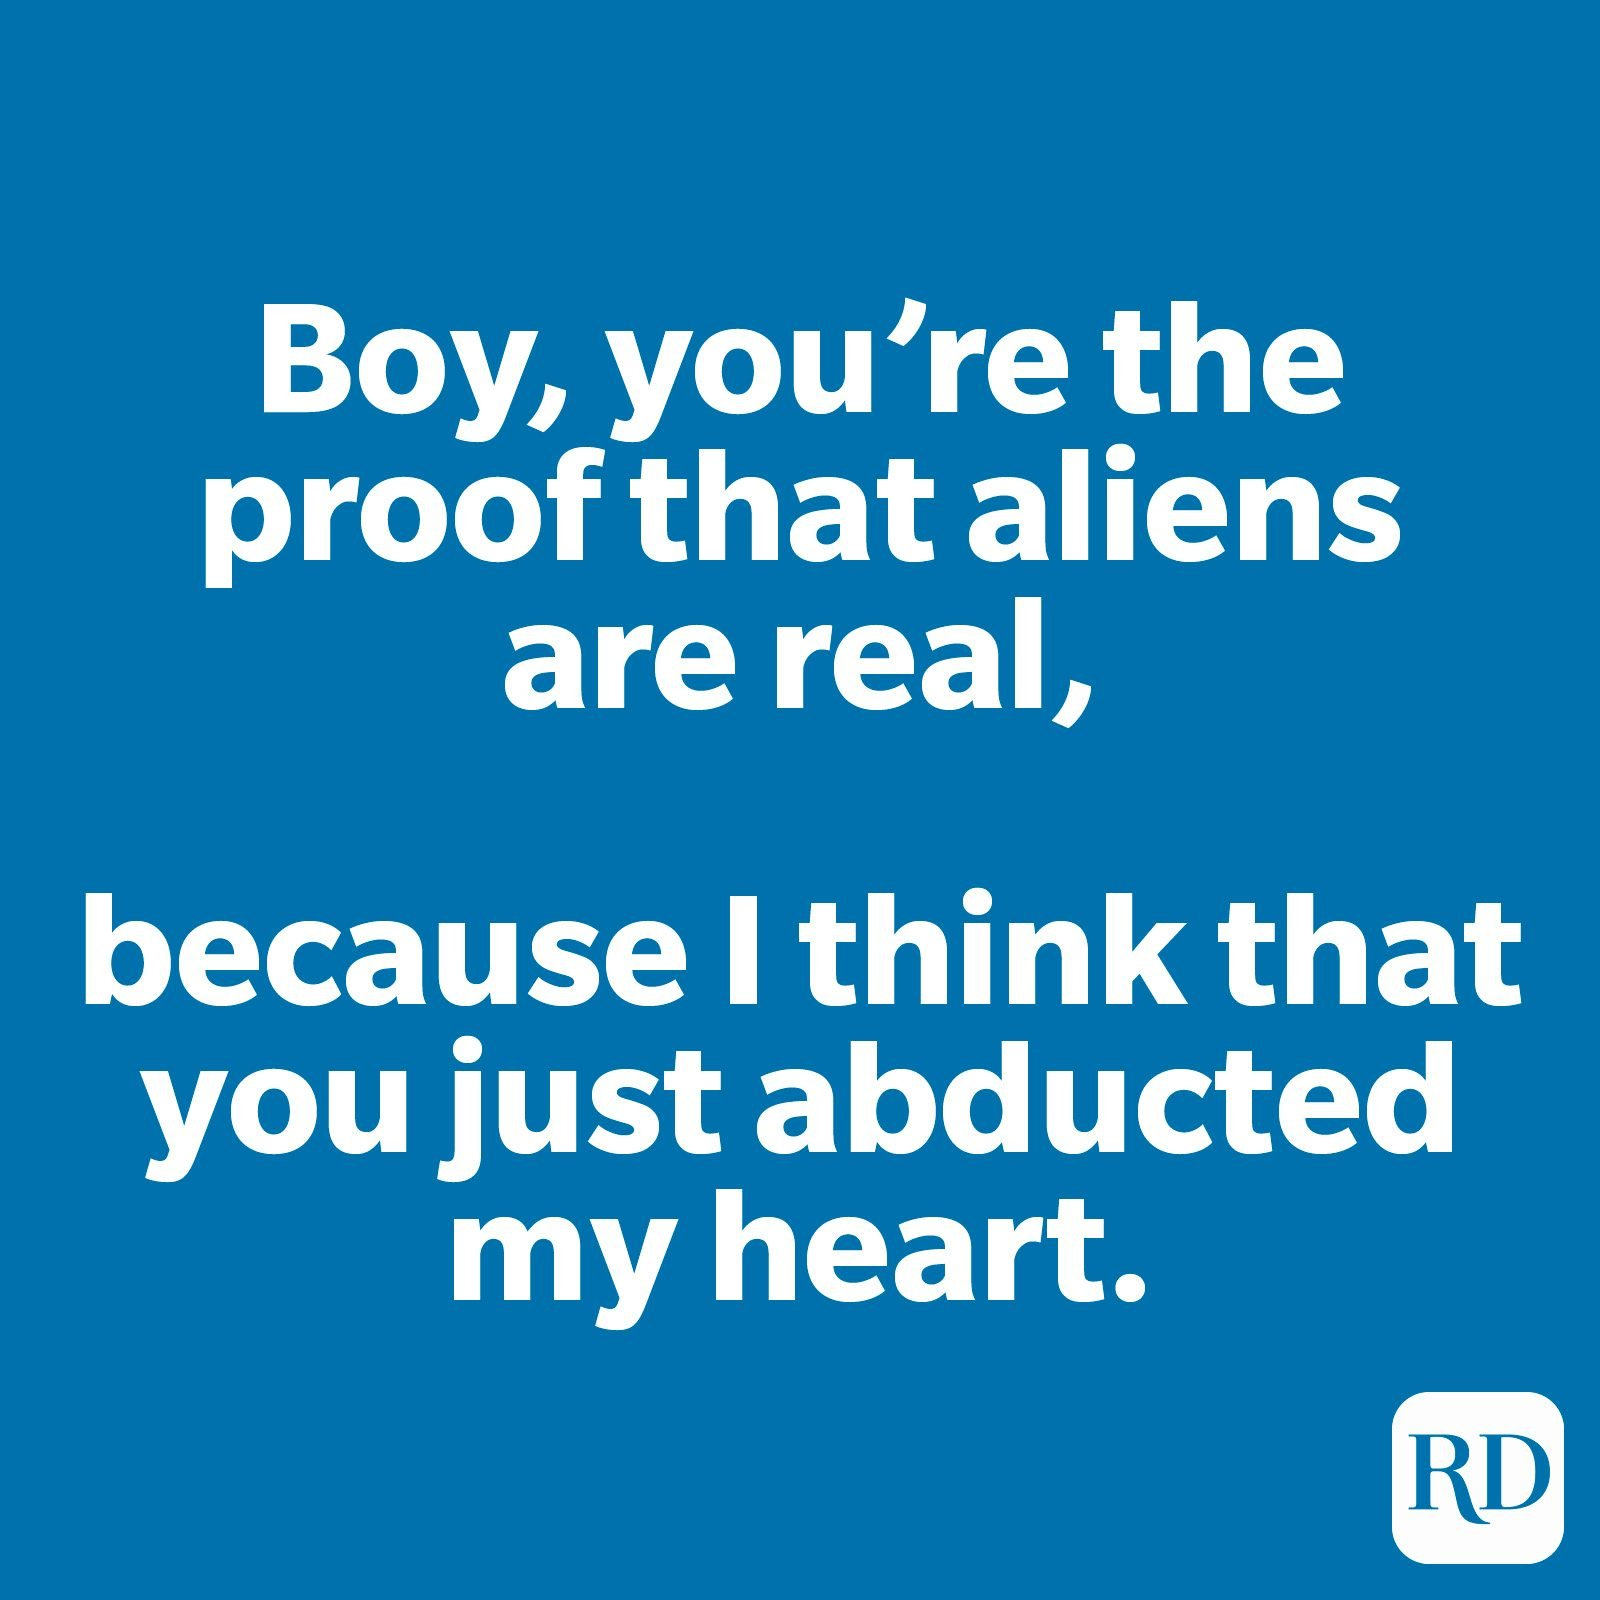 Boy, you're the proof that aliens are real, because I think that you just abducted my heart.